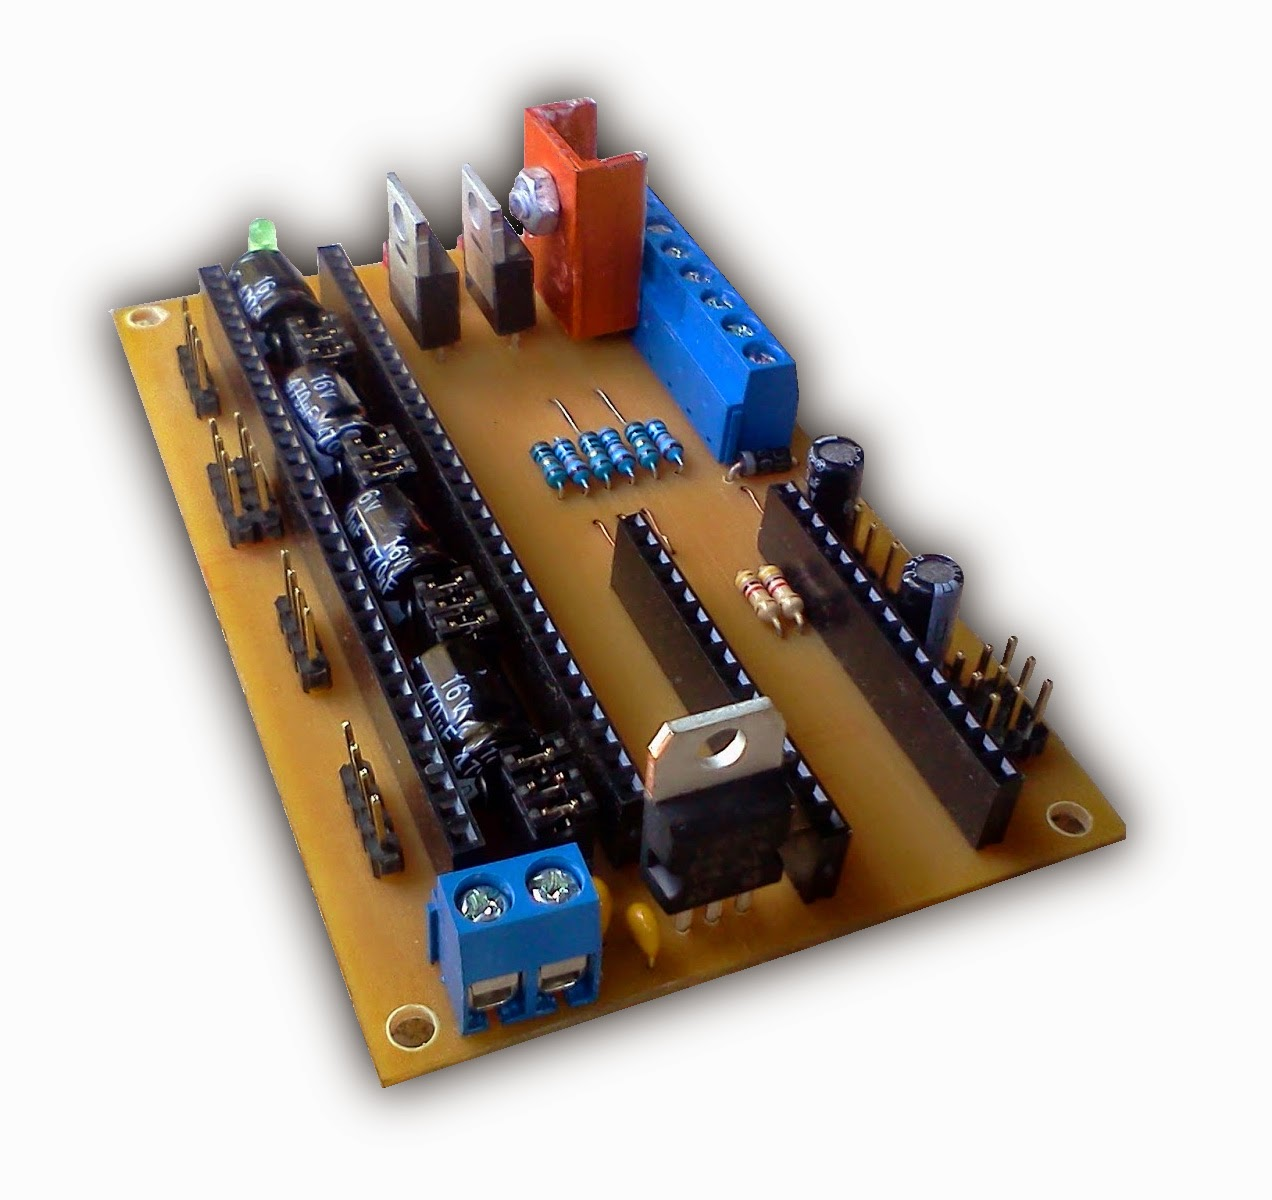 Sinaptec At32802 Is A 3d Fdm Printer Controller Board Of Ultra Low Solid State Relay Reprap Foto